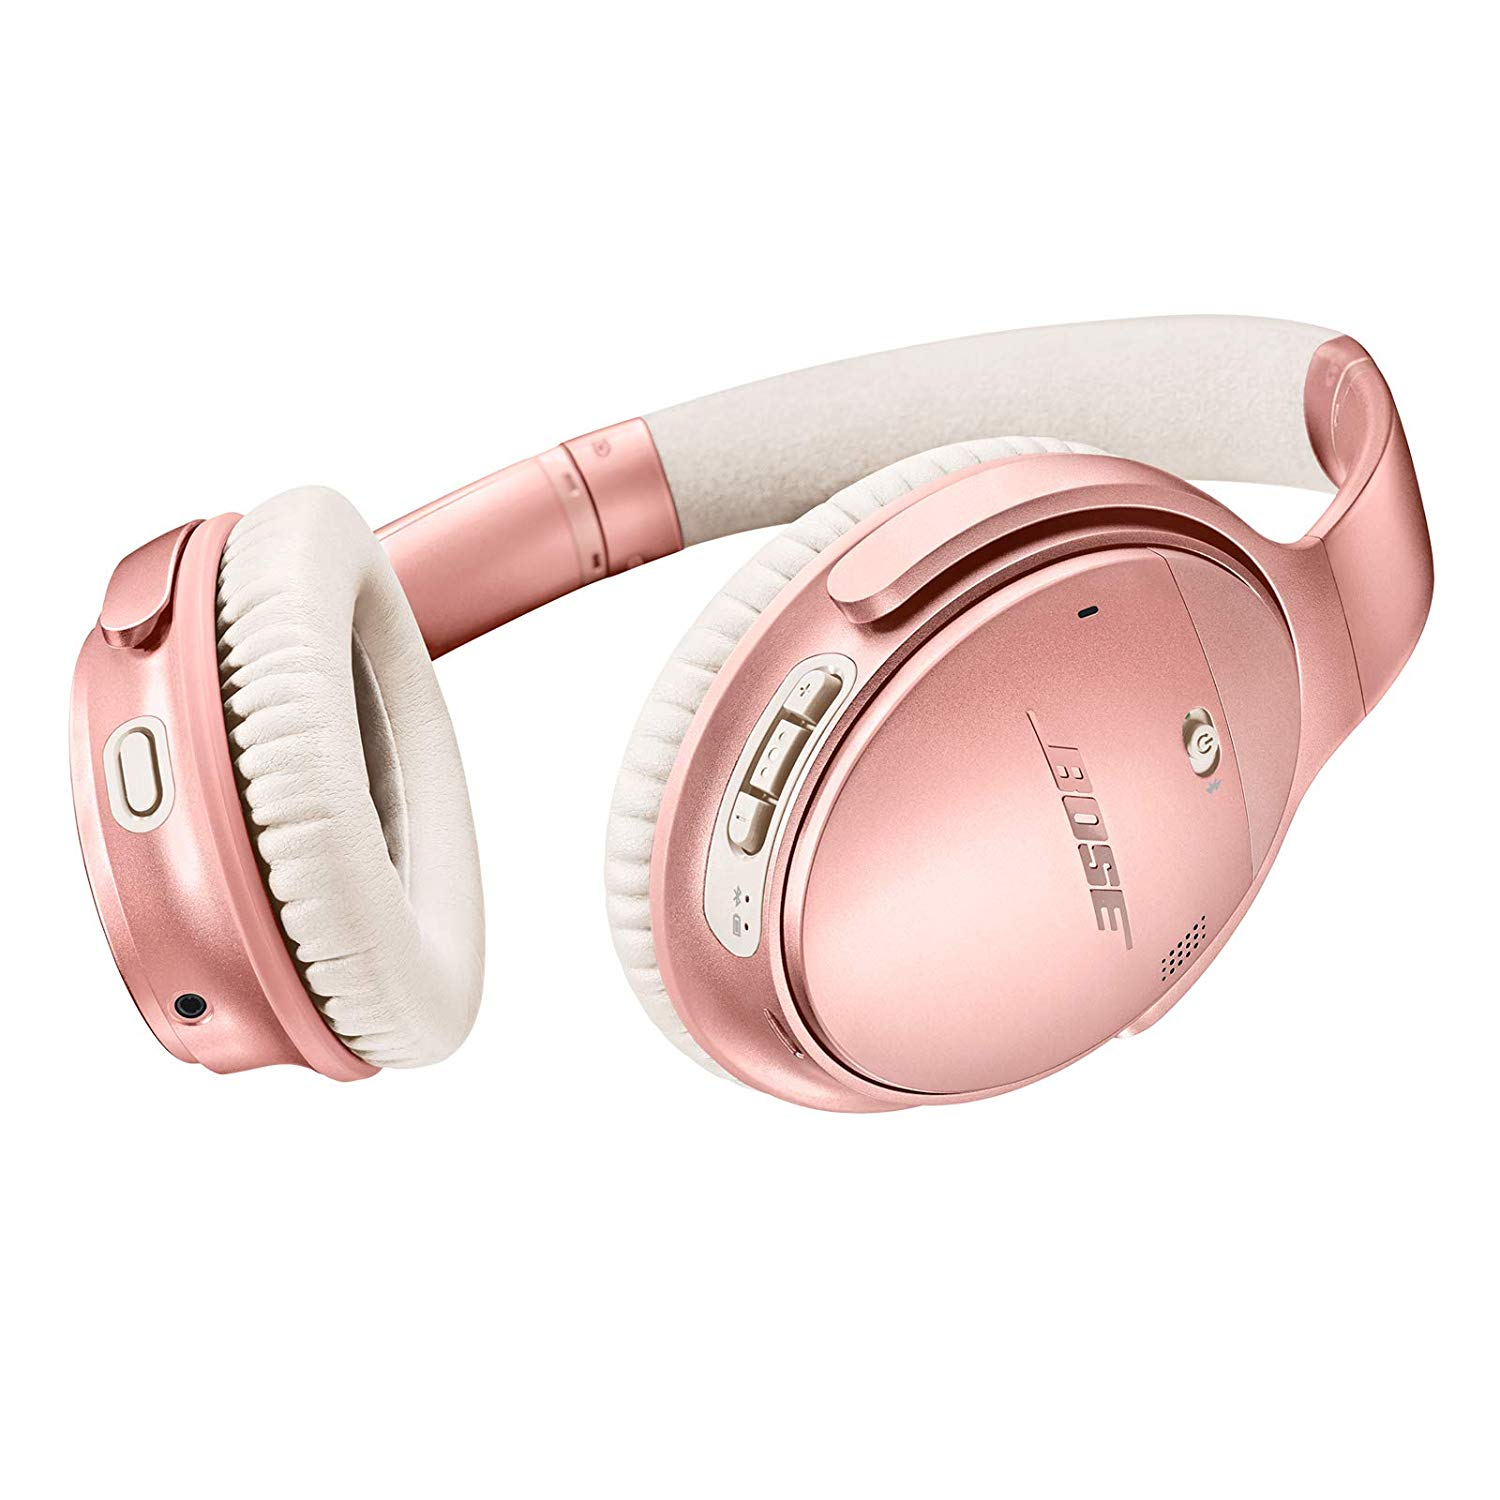 <p>Forget that these are rose gold and cool AF - they have real benefits. Noise-rejecting dual-microphone system for clear sound and voice pick-up and hassle-free Bluetooth pairing, personalized settings, access to future updates, and more through the Bose connect app. $349 @ Amazon. (Image: Amazon){&nbsp;}</p><p></p>